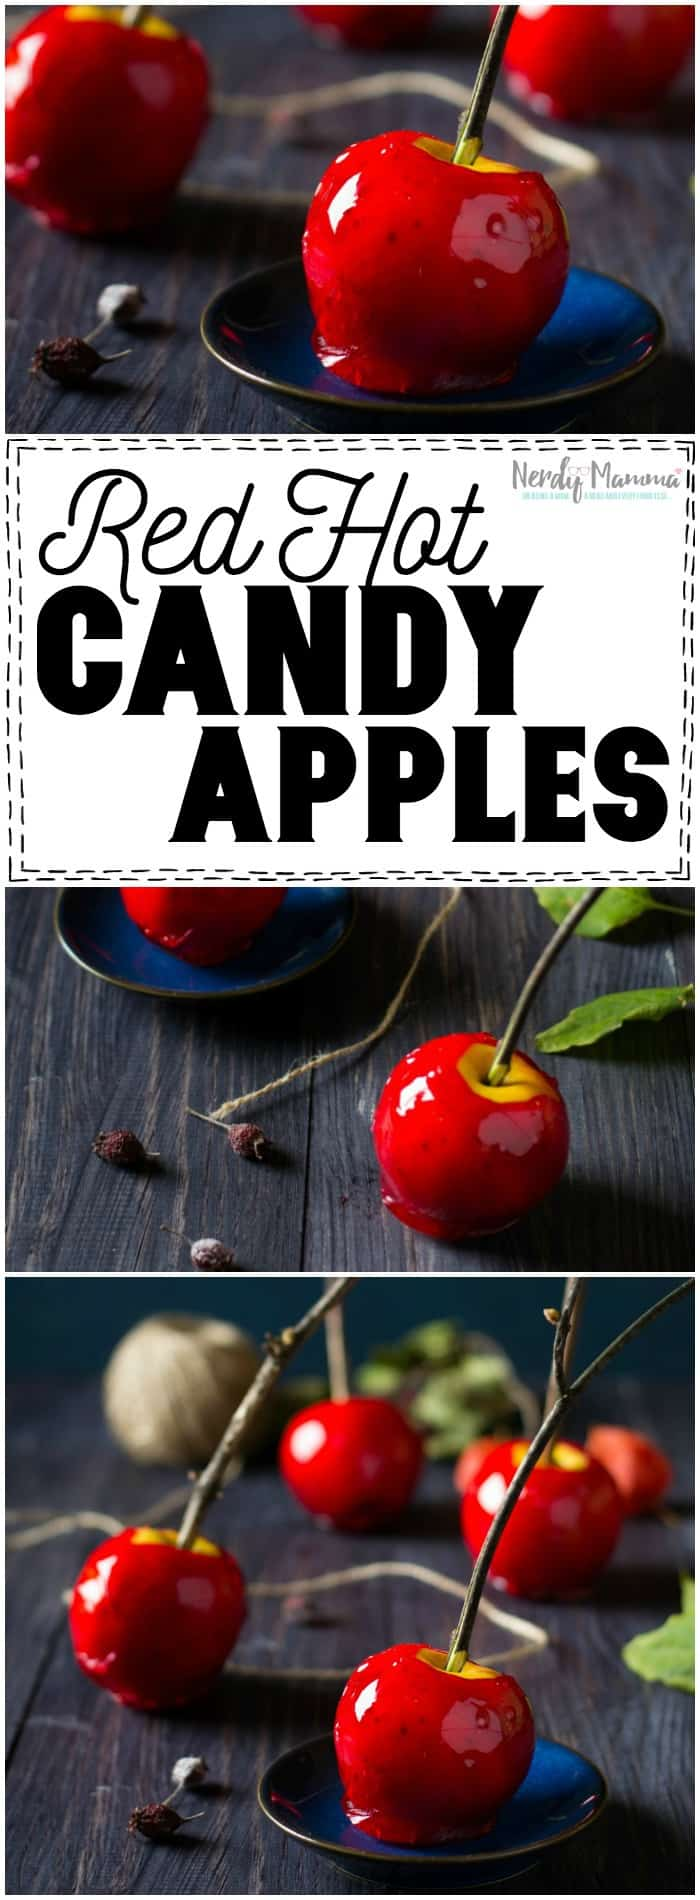 Oh, this recipe for Red Hot Candy Apples is TO DIE FOR. I totally need these now.